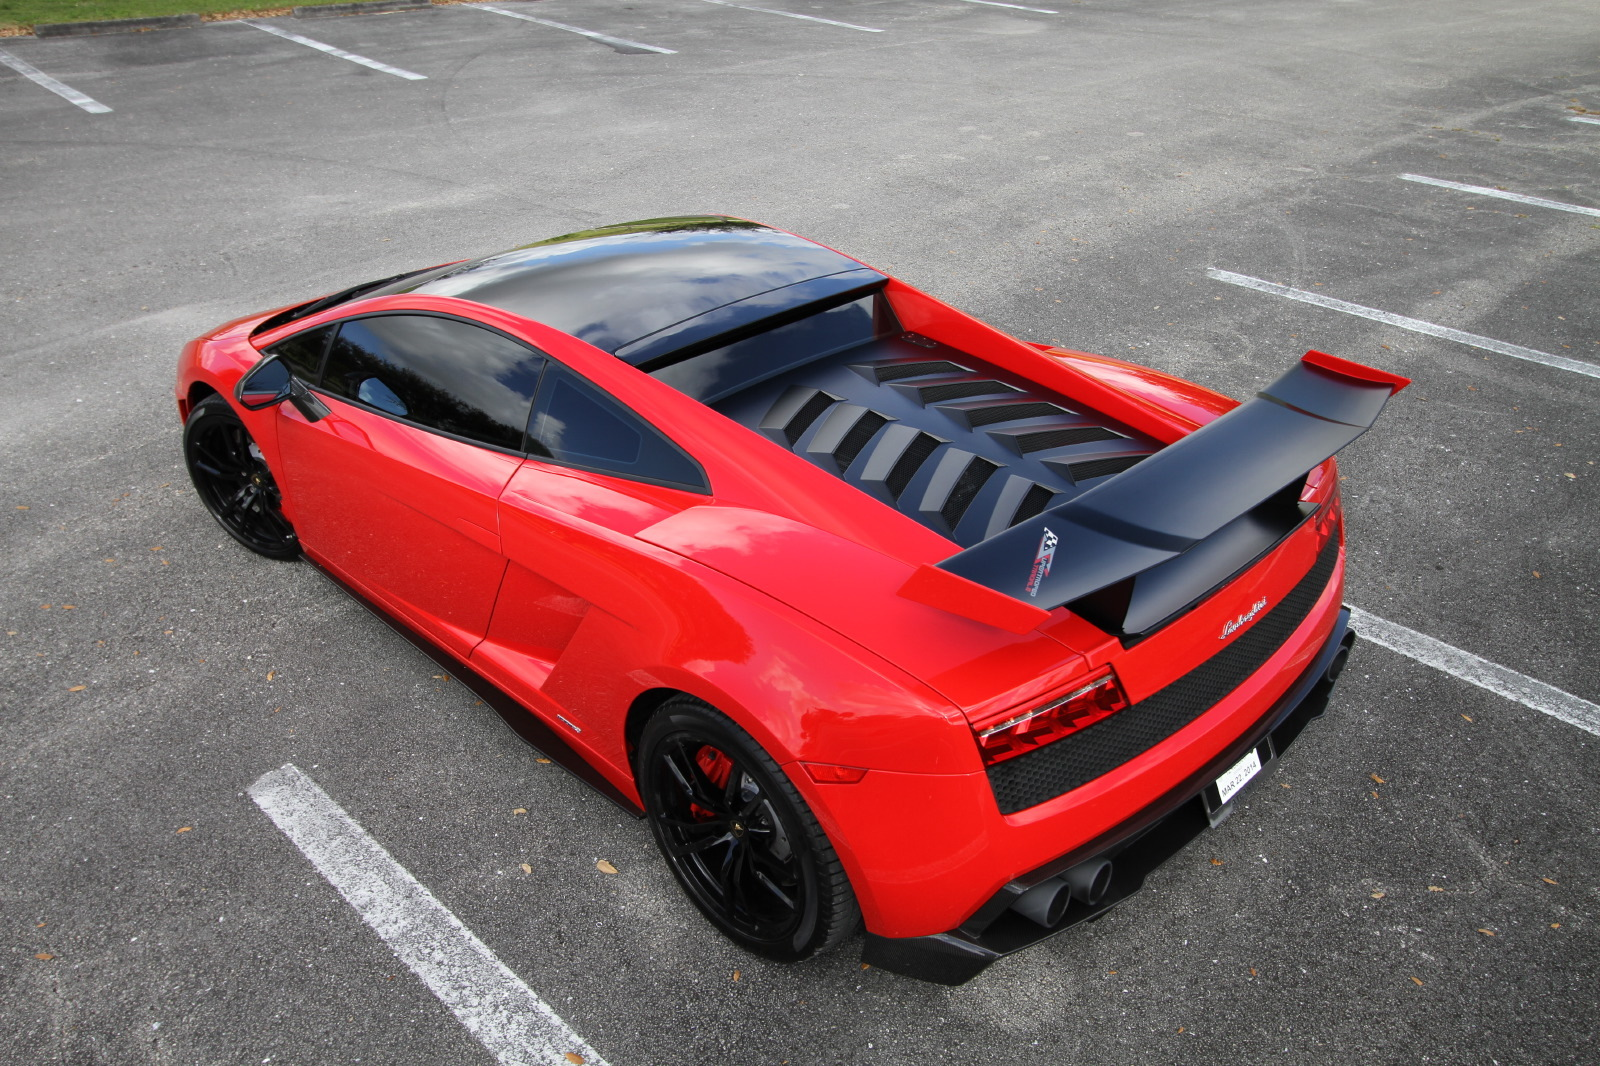 Red/Black 2012 Lamborghini Gallardo LP570-4 Super Trofeo Stradale